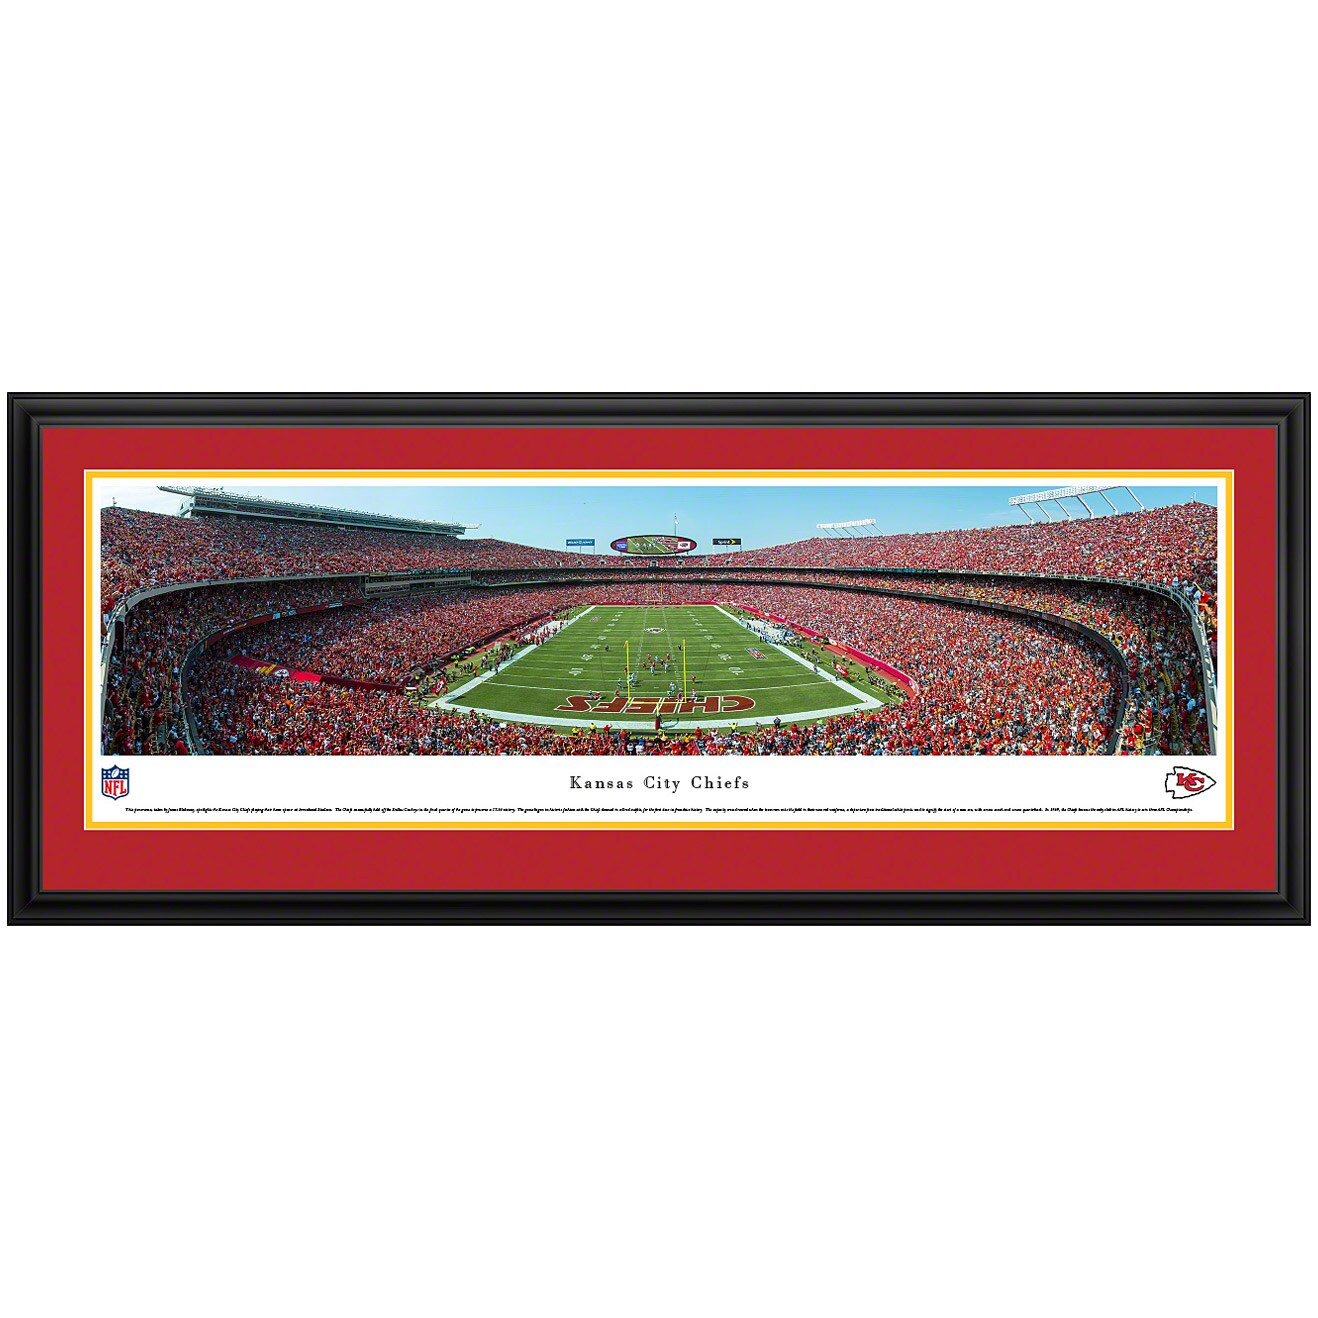 "Kansas City Chiefs 44"" x 18"" End Zone Deluxe Frame Panoramic Photo"